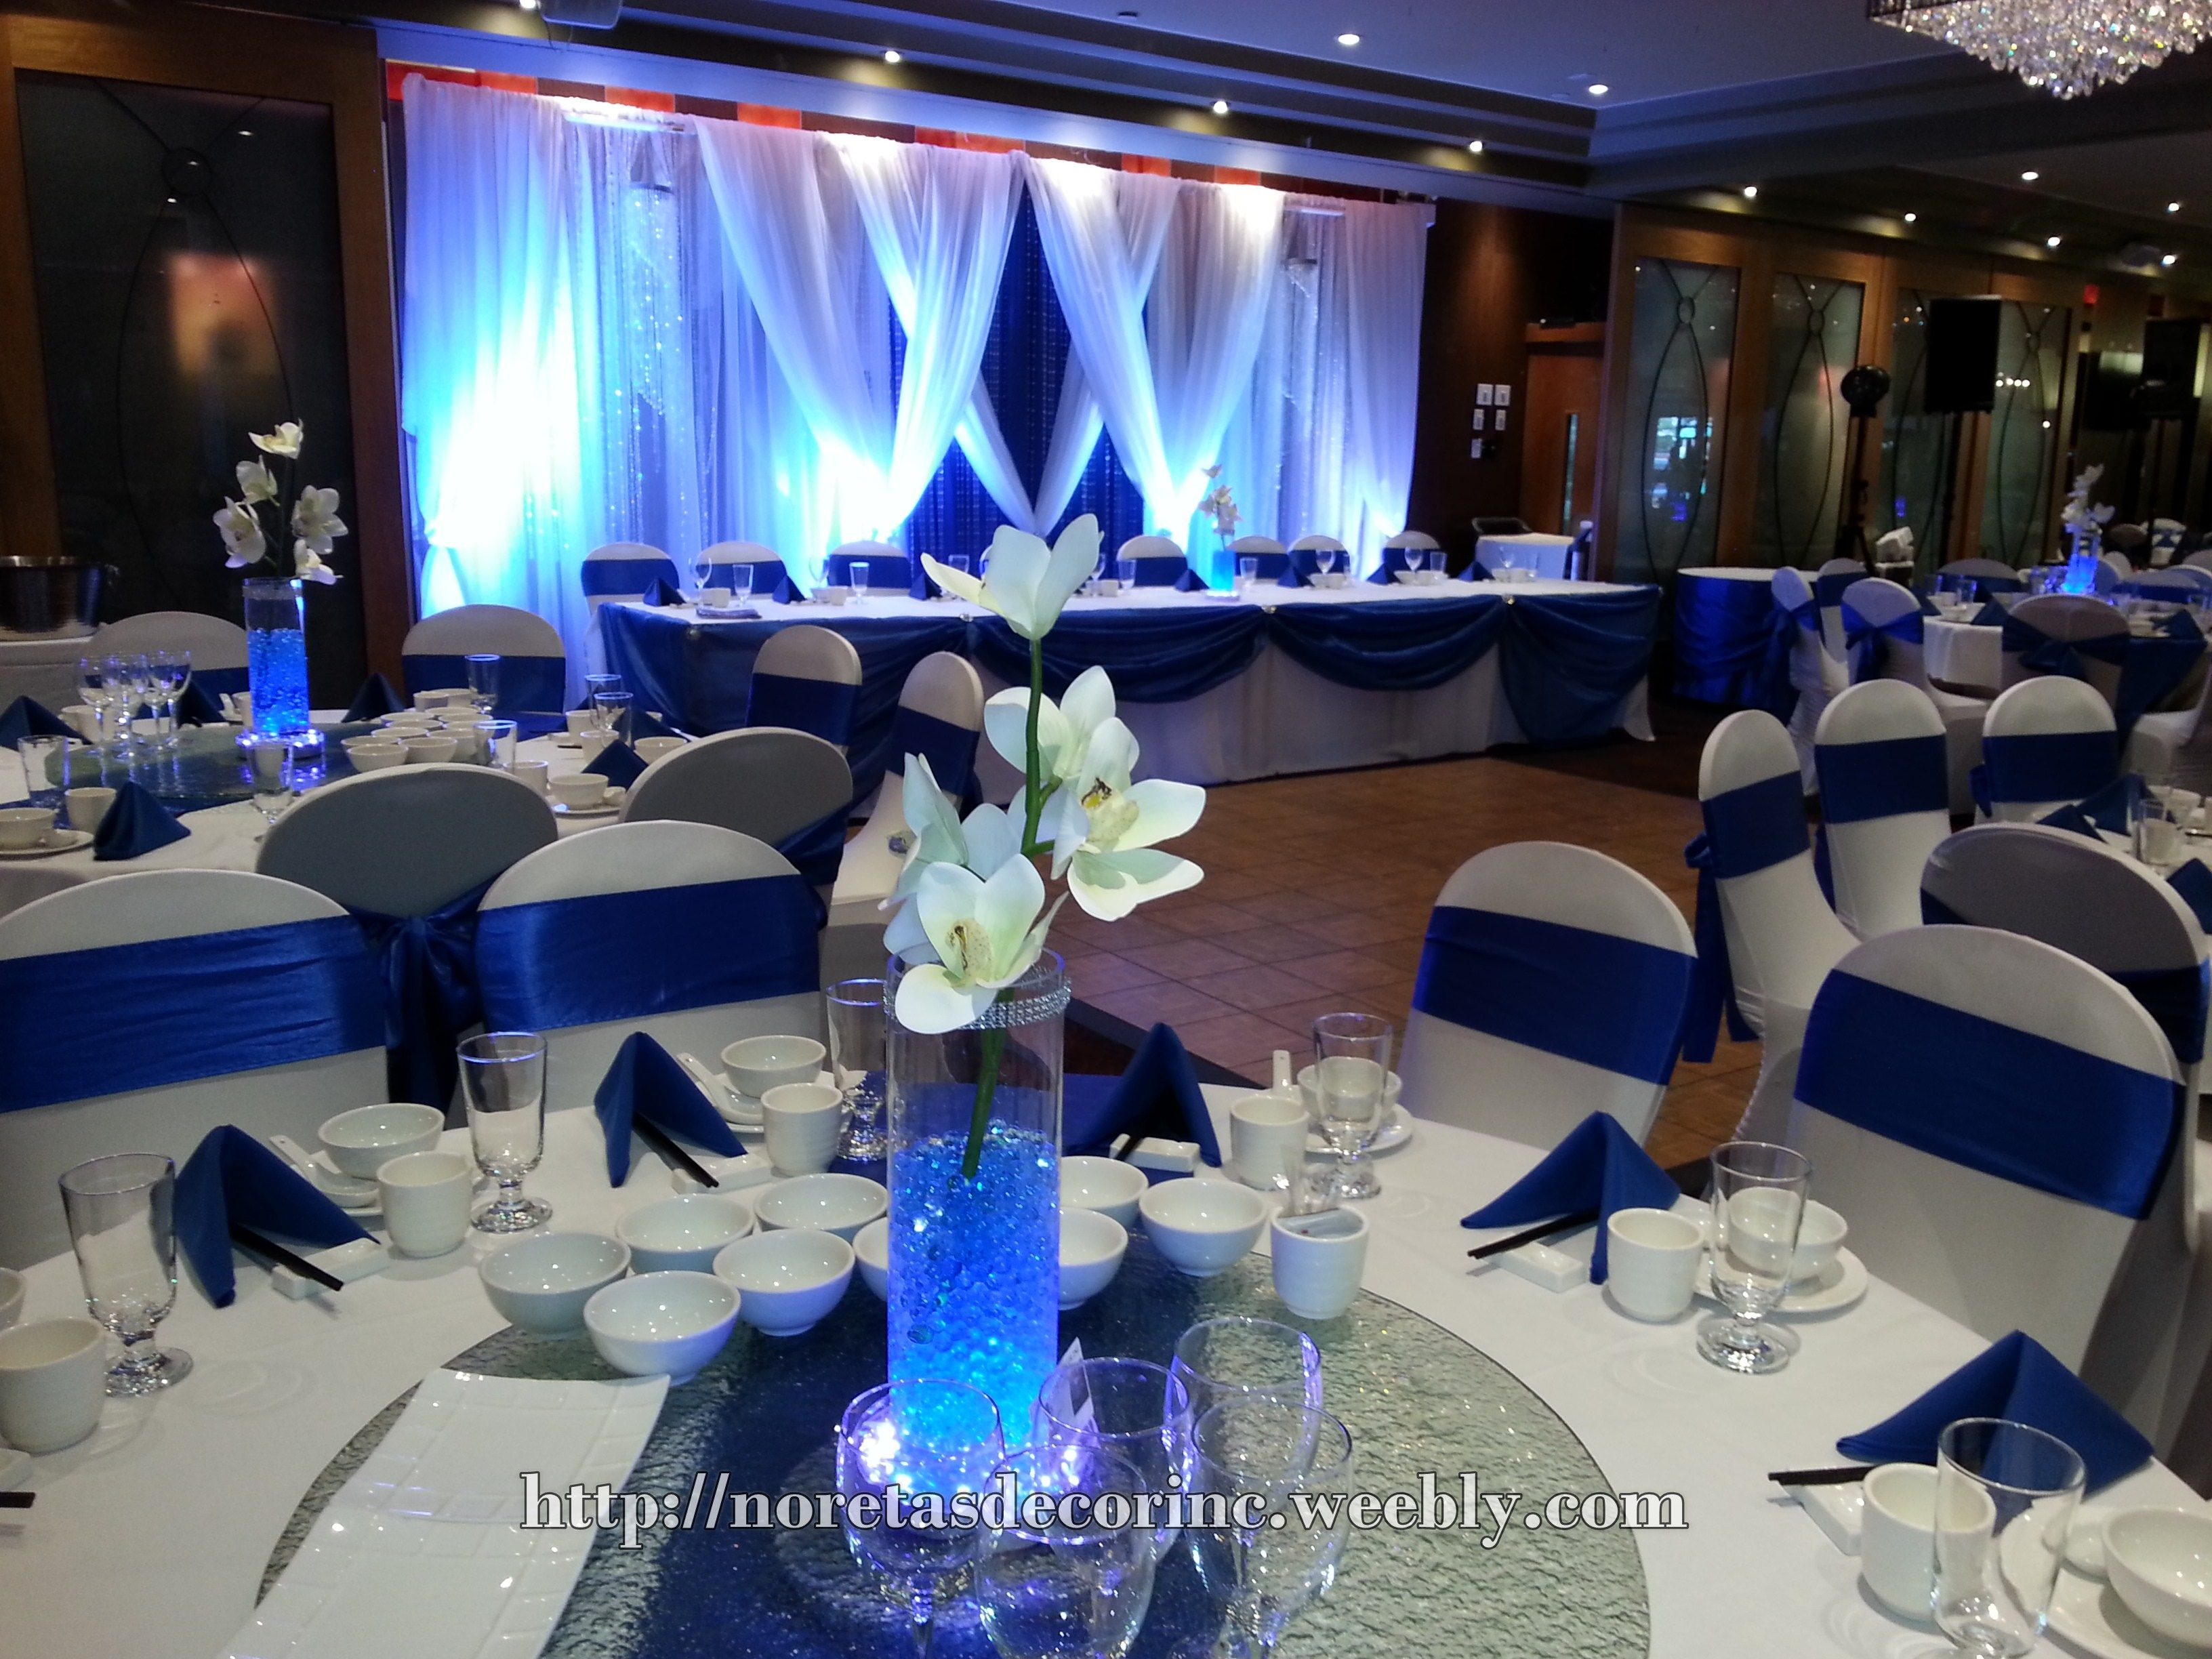 Blue themed wedding decor  Royal blue decoration blue and white backdrop  th and Fabulous